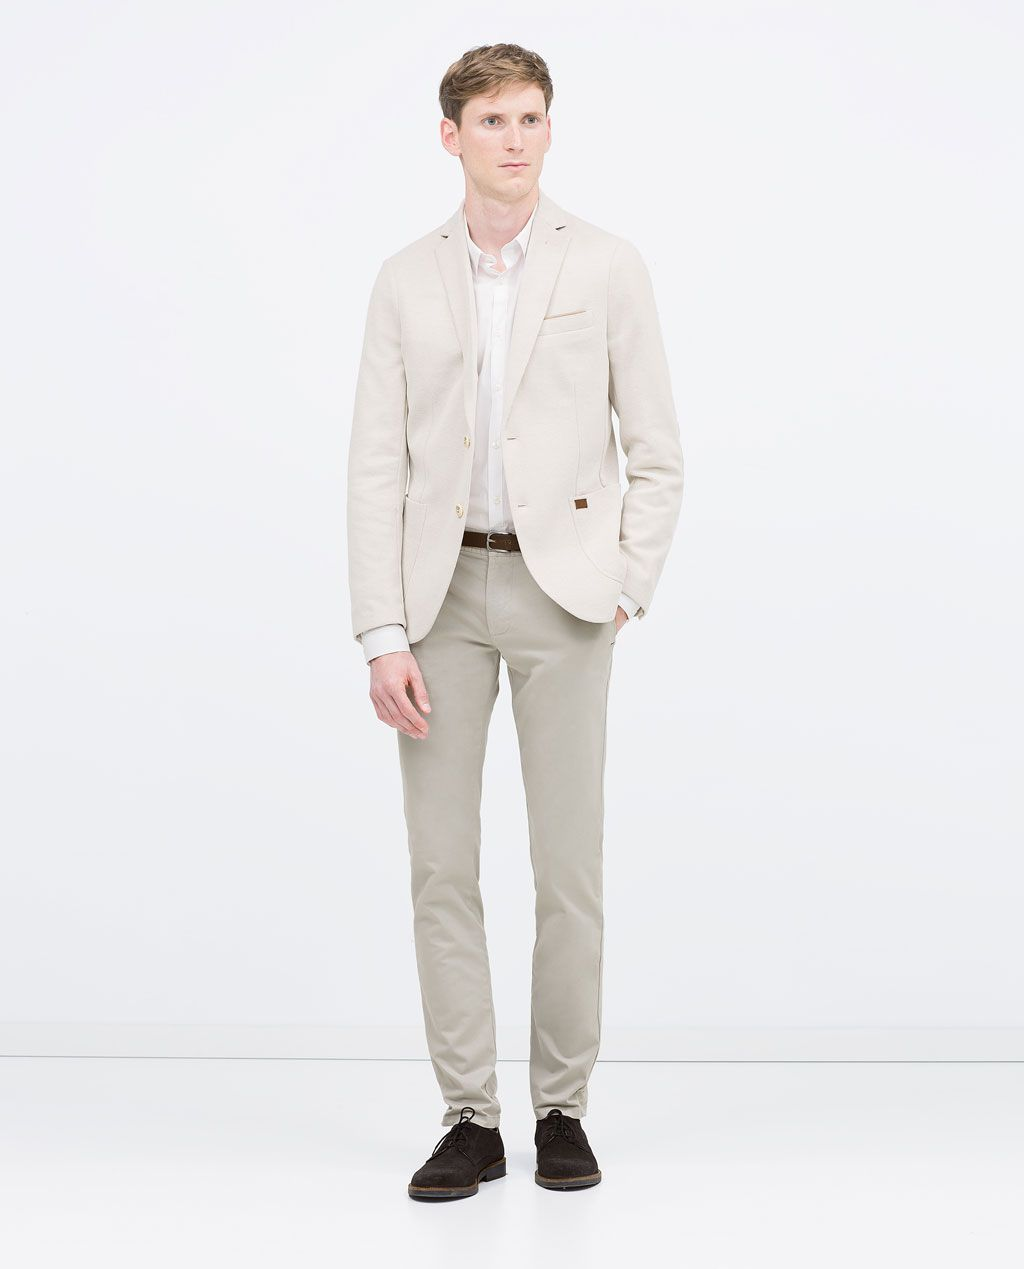 7d1b6618 ZARA - MAN - PIQUÉ BLAZER WITH ELBOW PATCHES | wedding | Suit Jacket ...